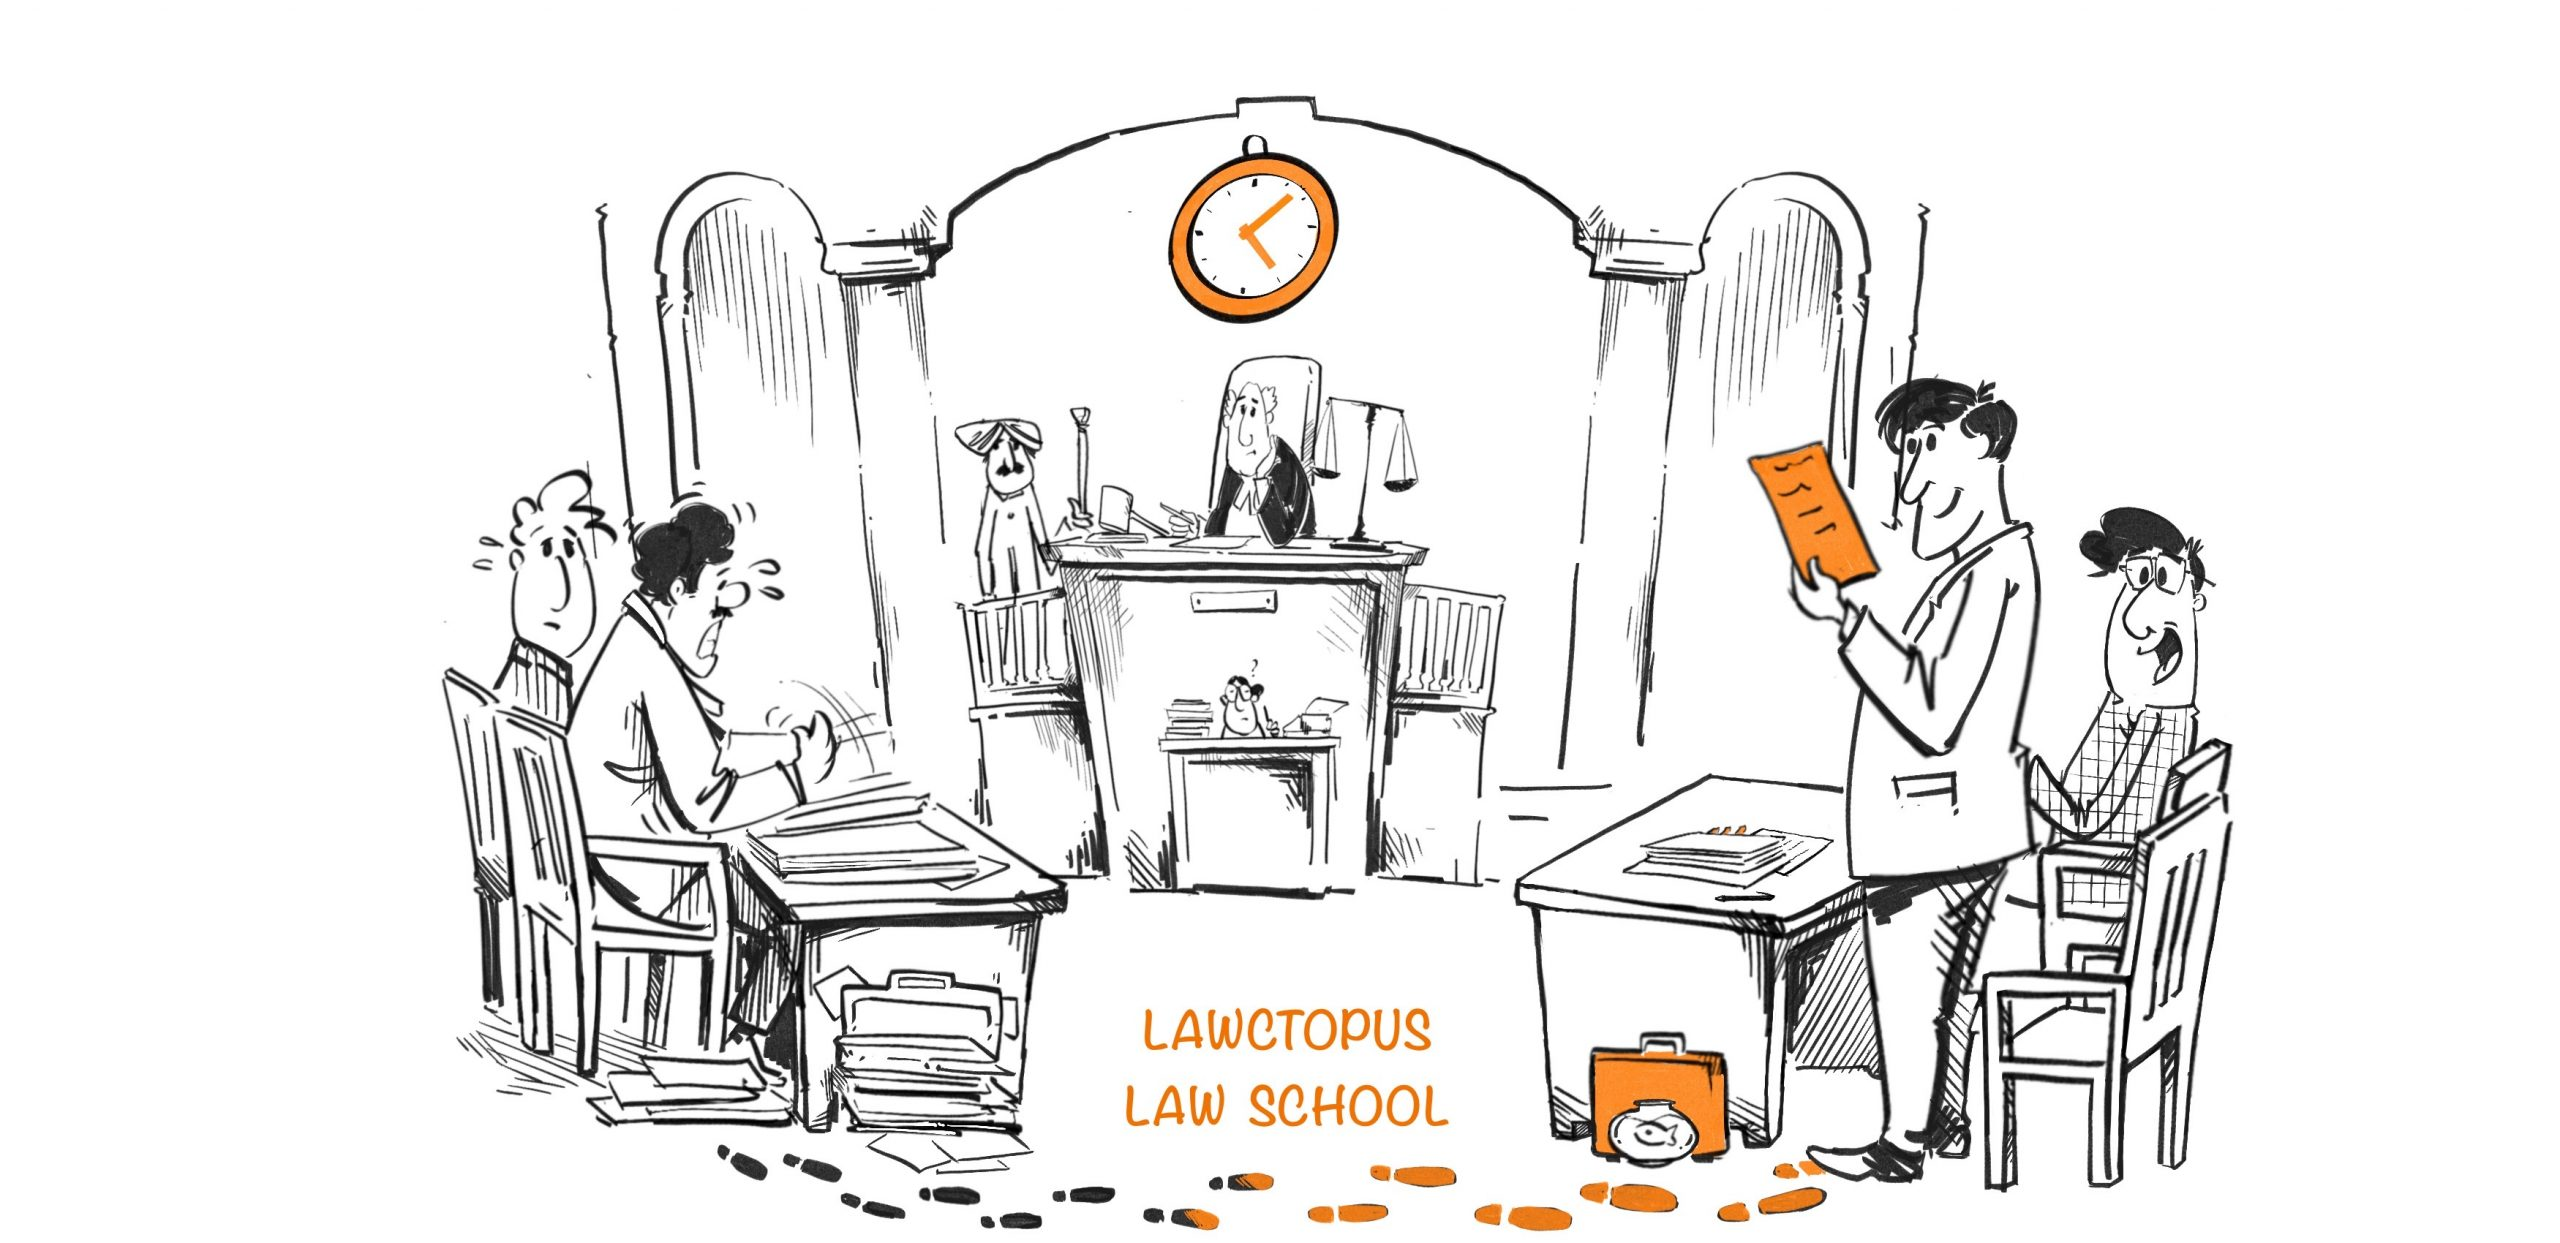 online course on litigation by lawctopus